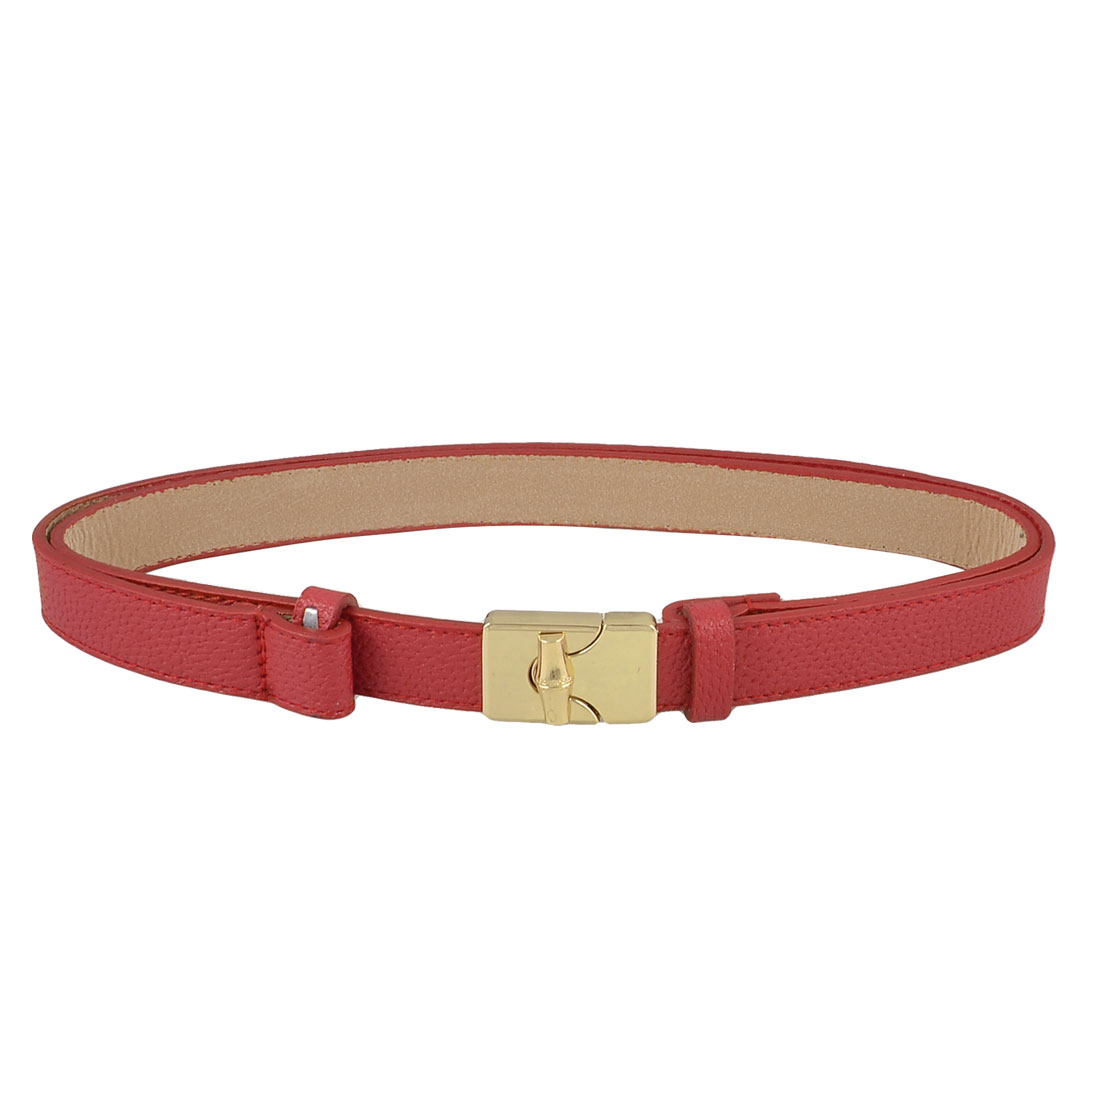 Lady Gold Tone Metal Turn Lock Buckle Red Faux Leather Thin Sliding Waist Belt